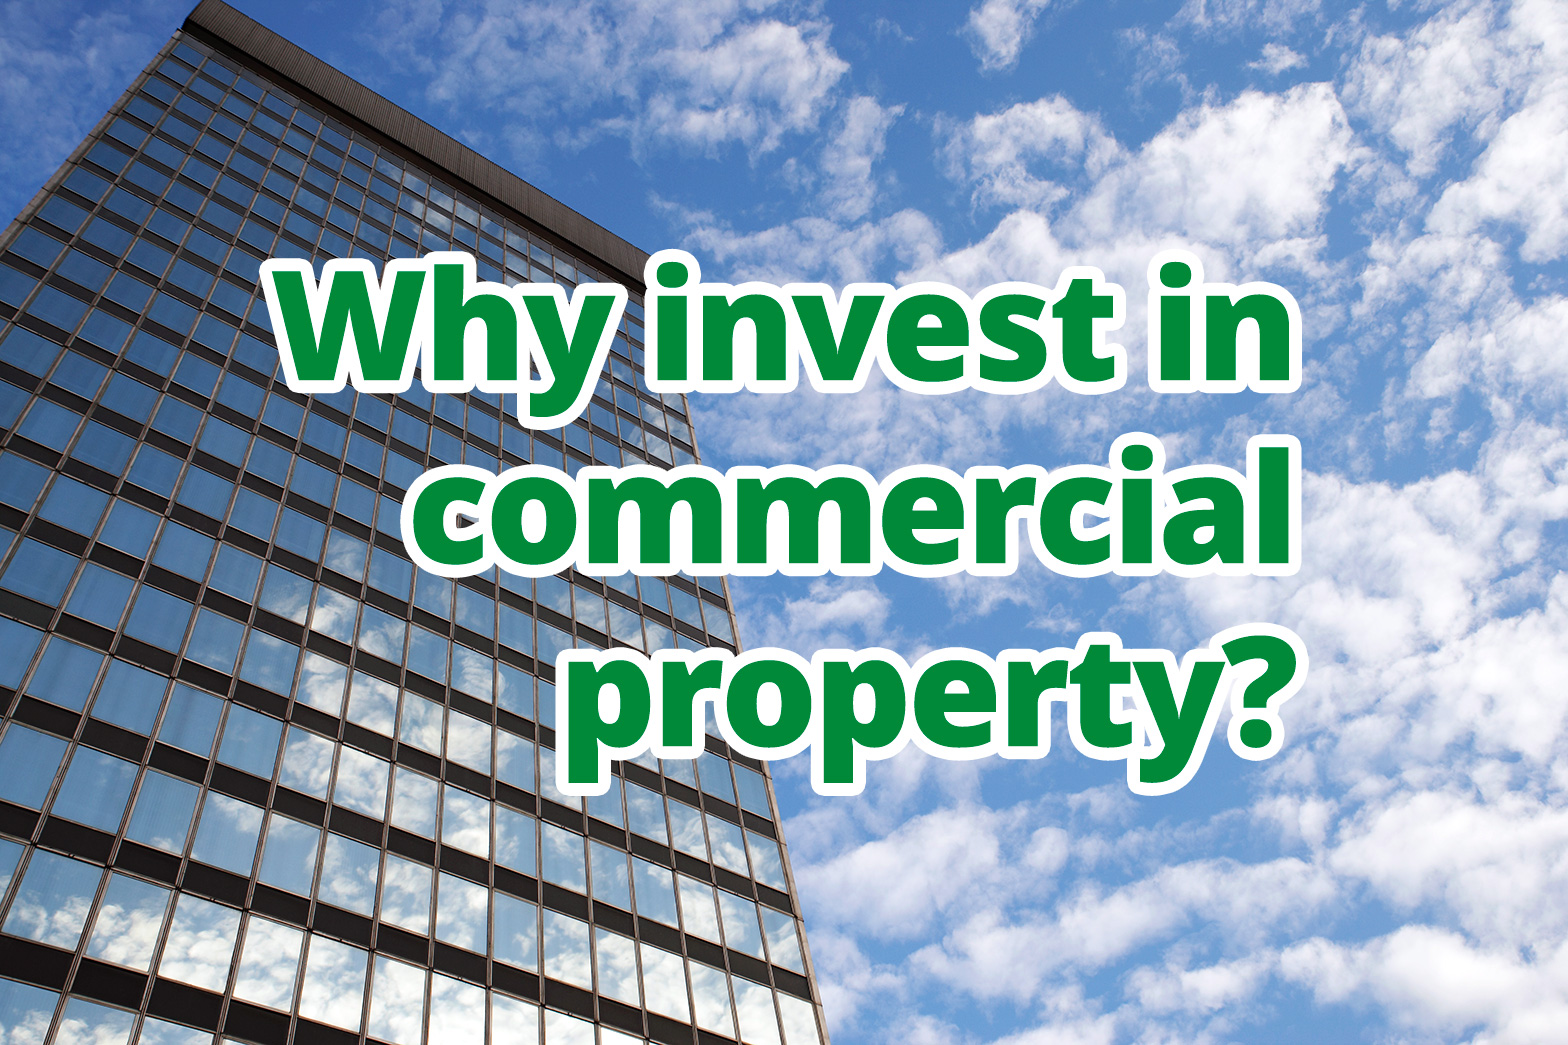 Why invest in commercial property?